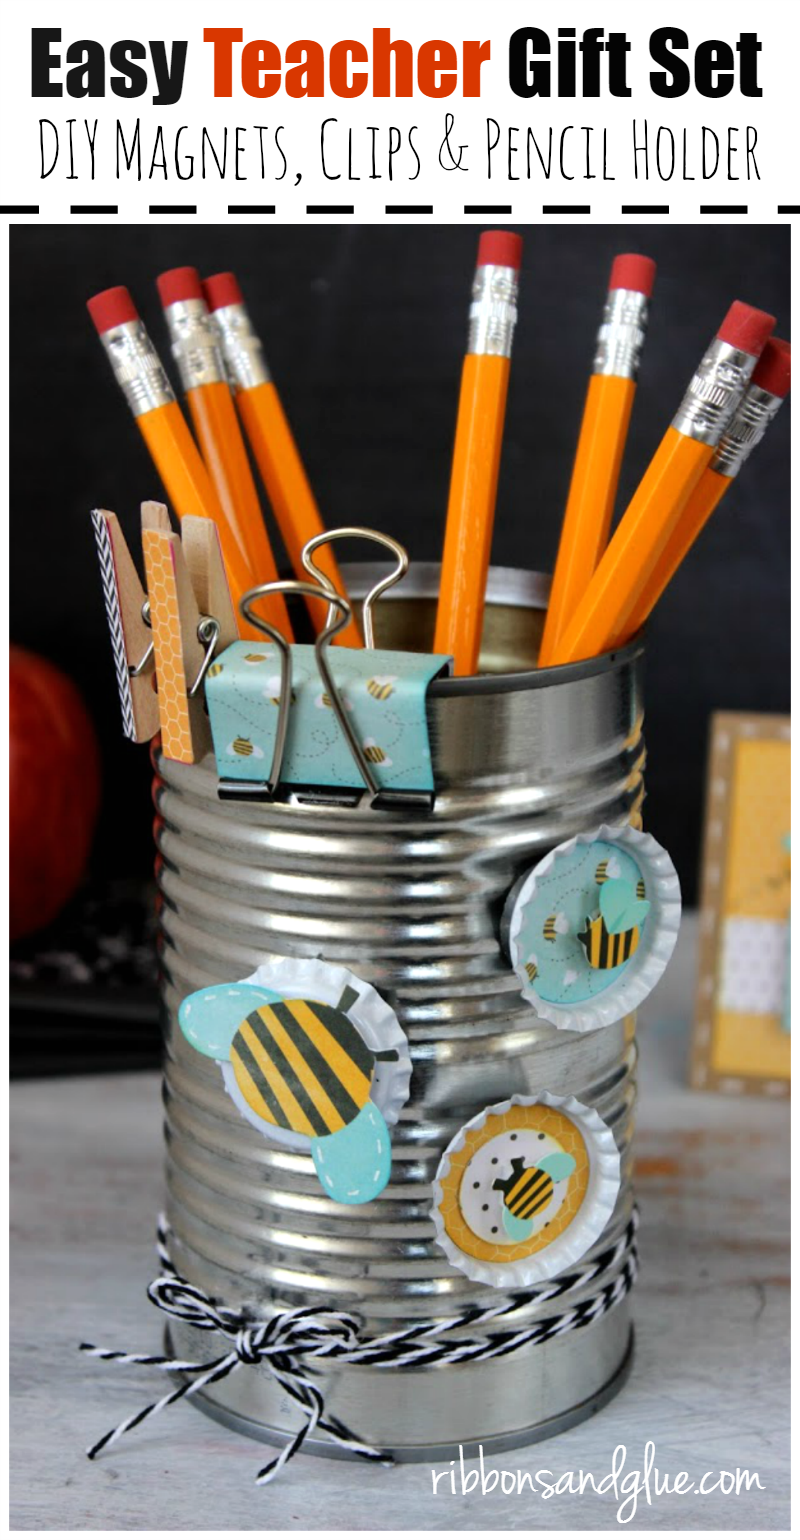 Upcycle a tin can in to an  Easy Teacher Gift Set by creating DIY Bottle Cap Magnets, Paper covered metal clips and a pencil holder.